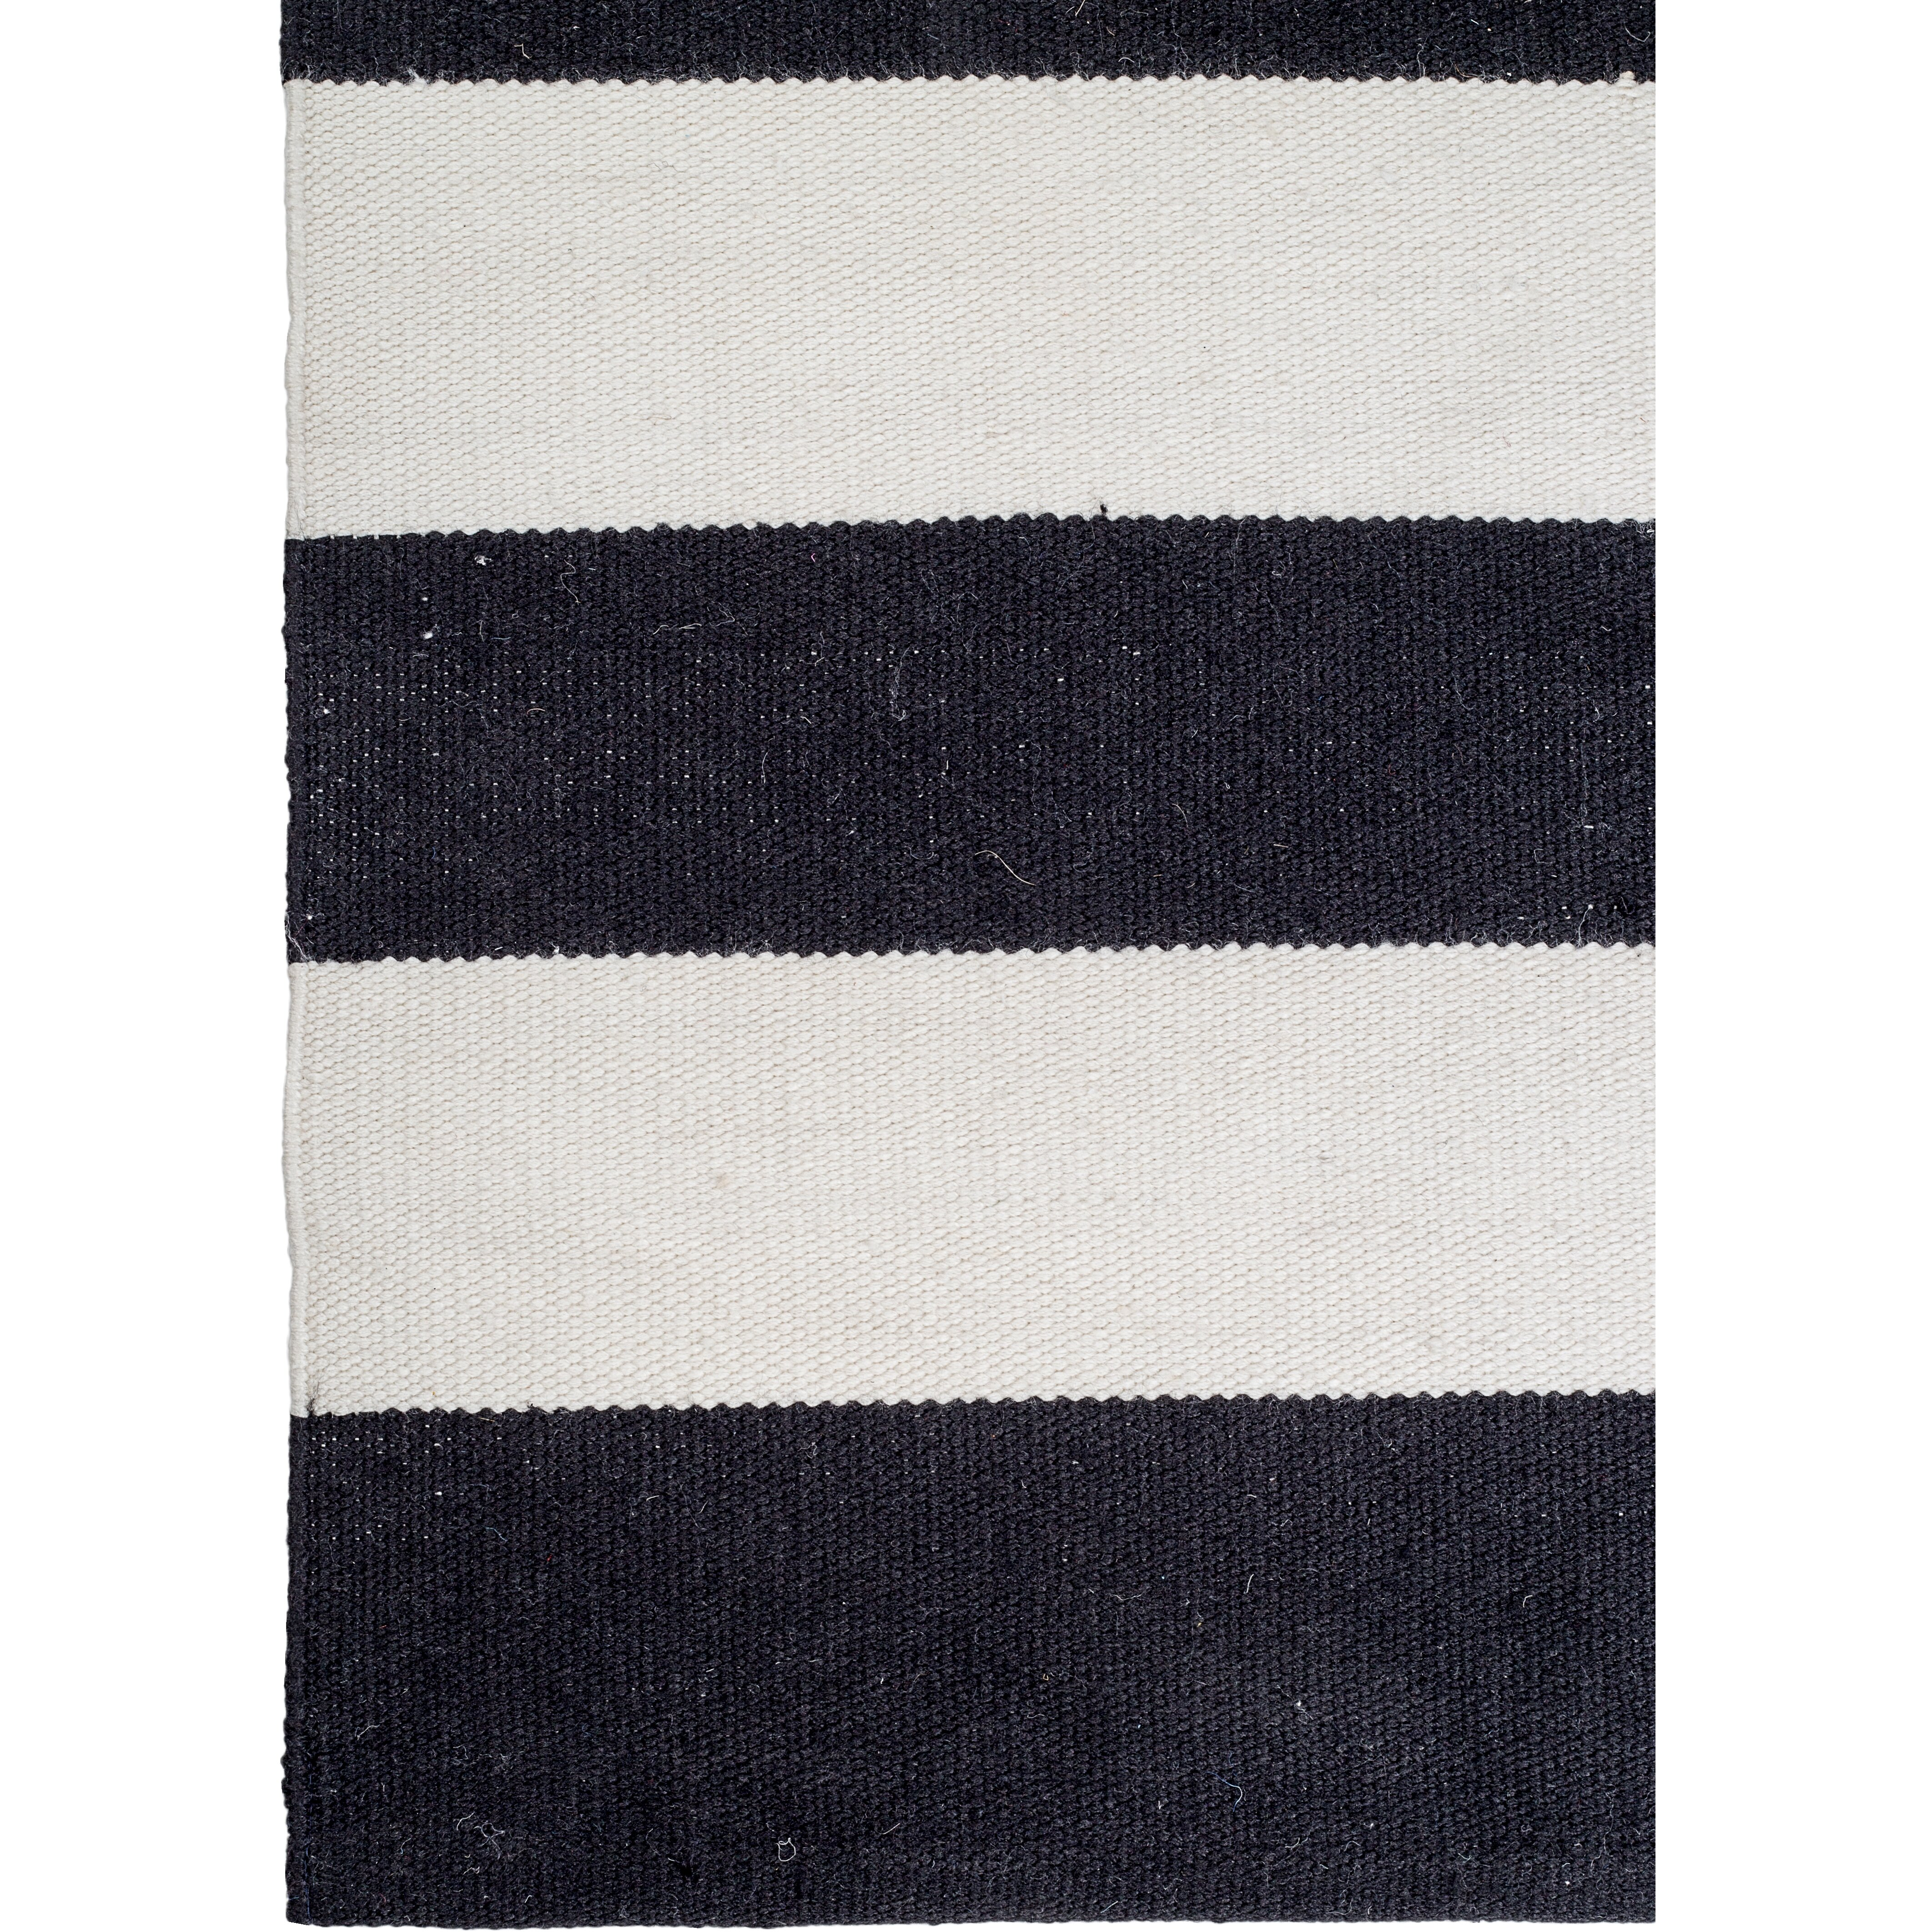 Fab habitat nantucket striped black white indoor outdoor for Black and white striped bath rug